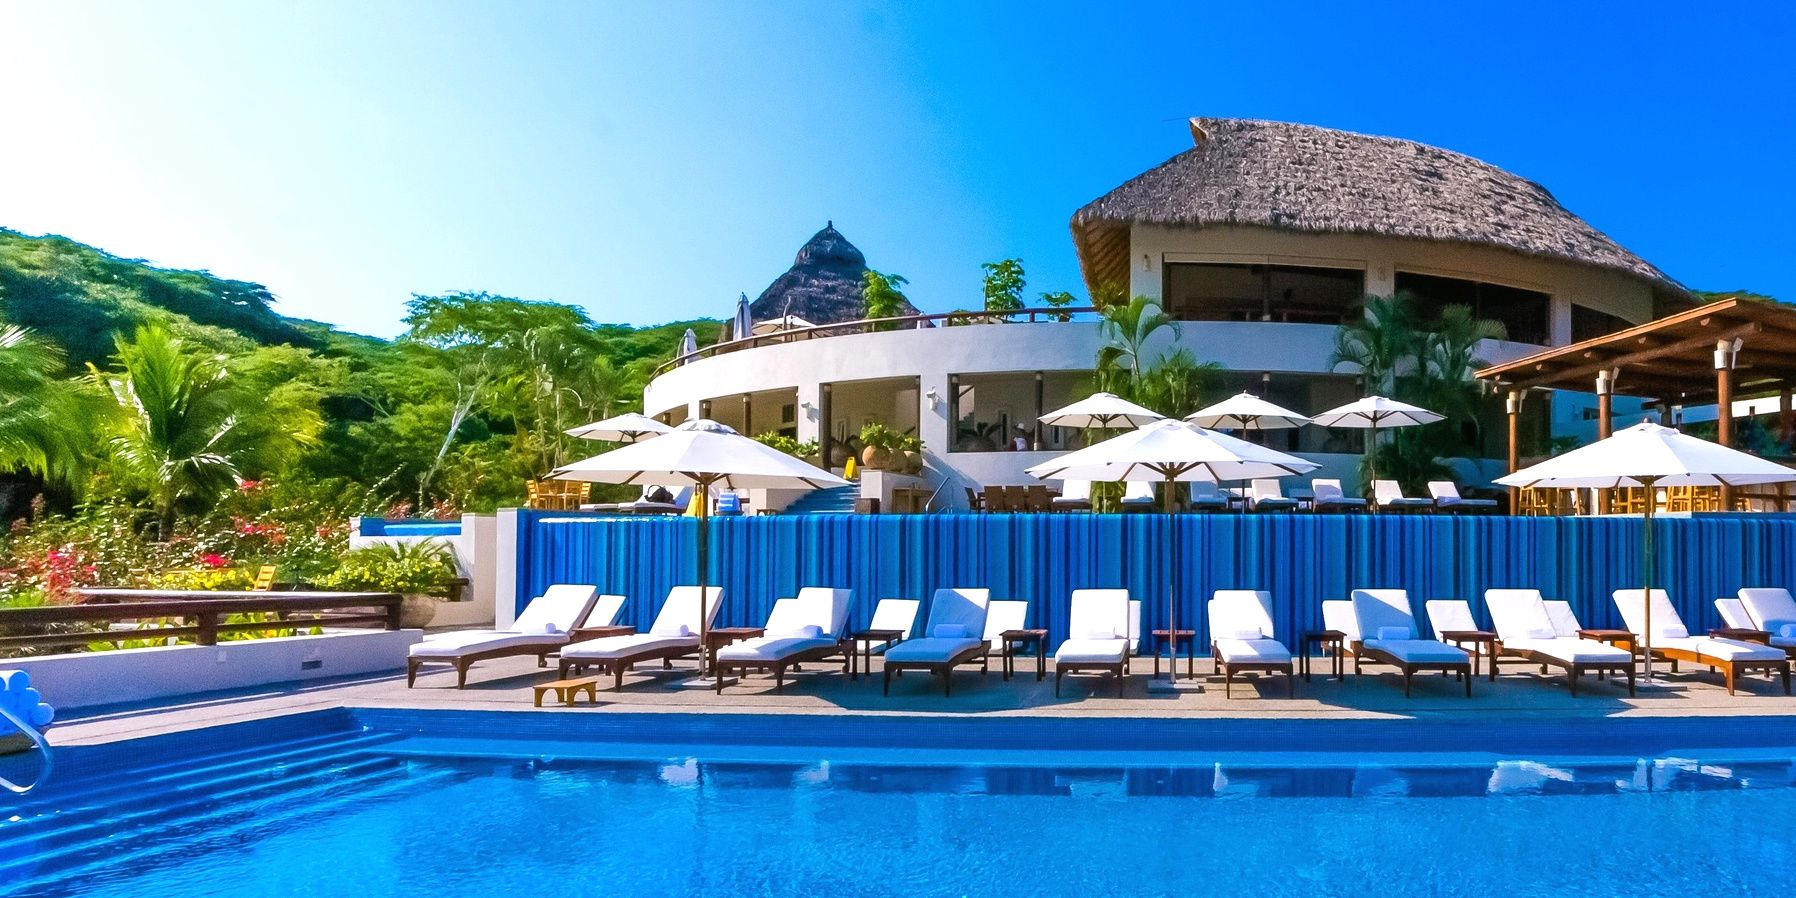 Puerto Vallarta 45Star AllInclusive 5Night Vacation